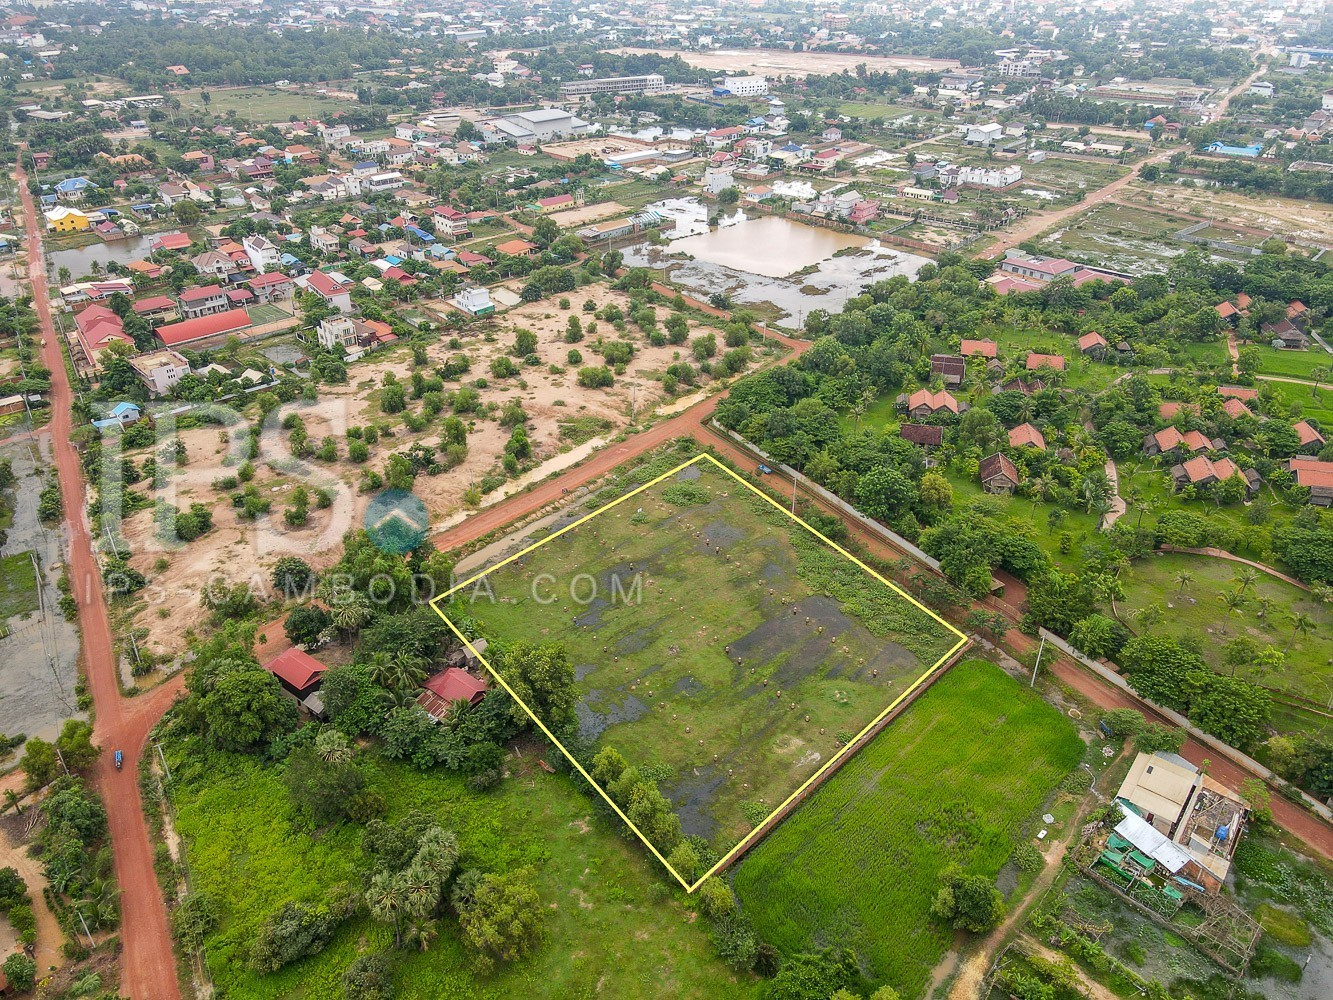 7980 Sqm  Land  For Sale - Svay Dangkum, Siem Reap